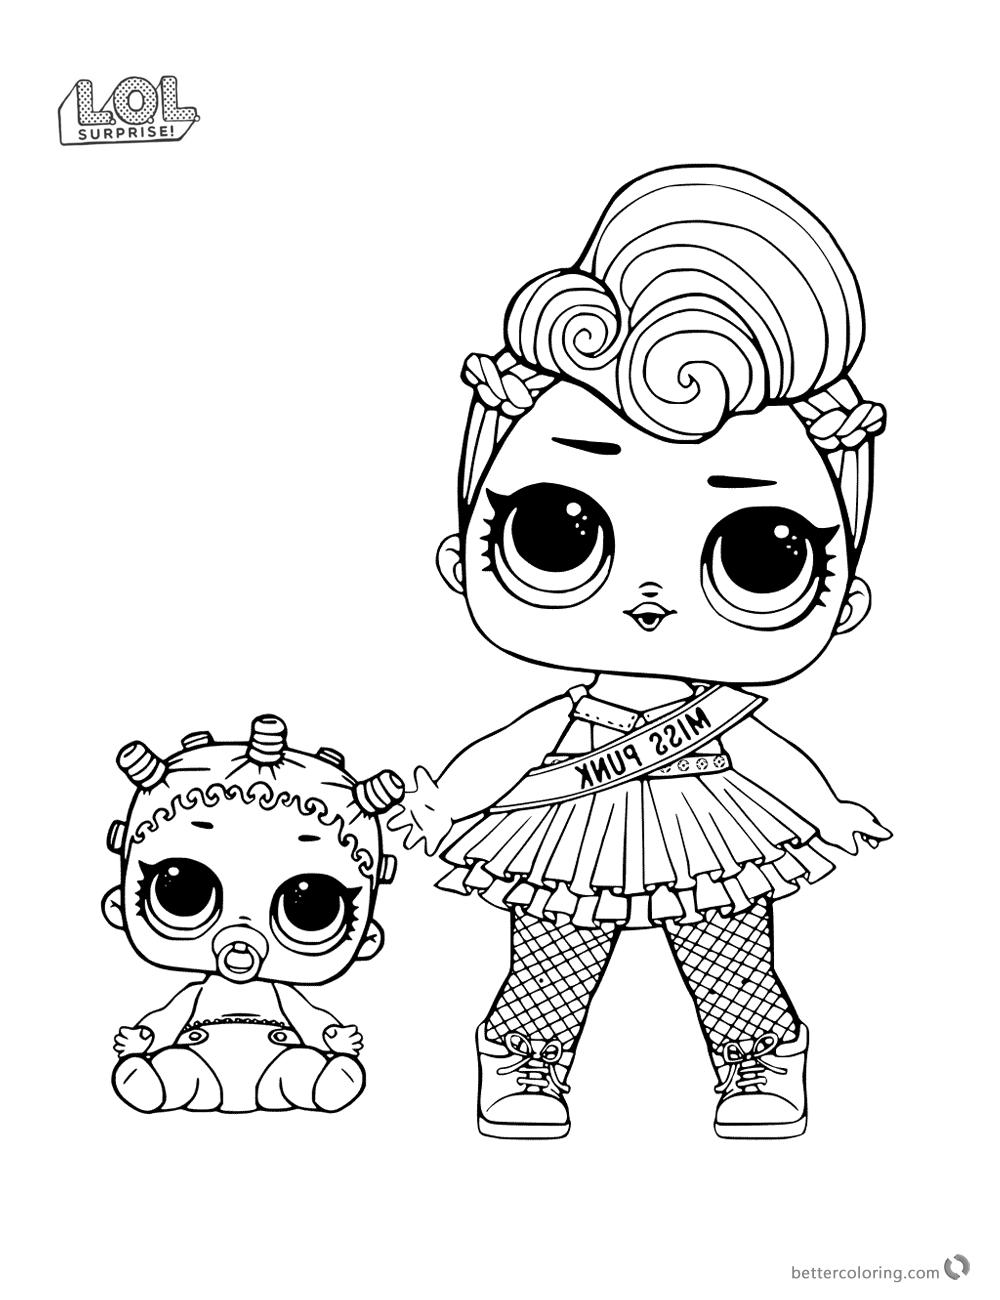 Free Miss Punk Lol Surprise Doll Coloring Pages Printable Cool Coloring Pages Halloween Coloring Pages Coloring Books